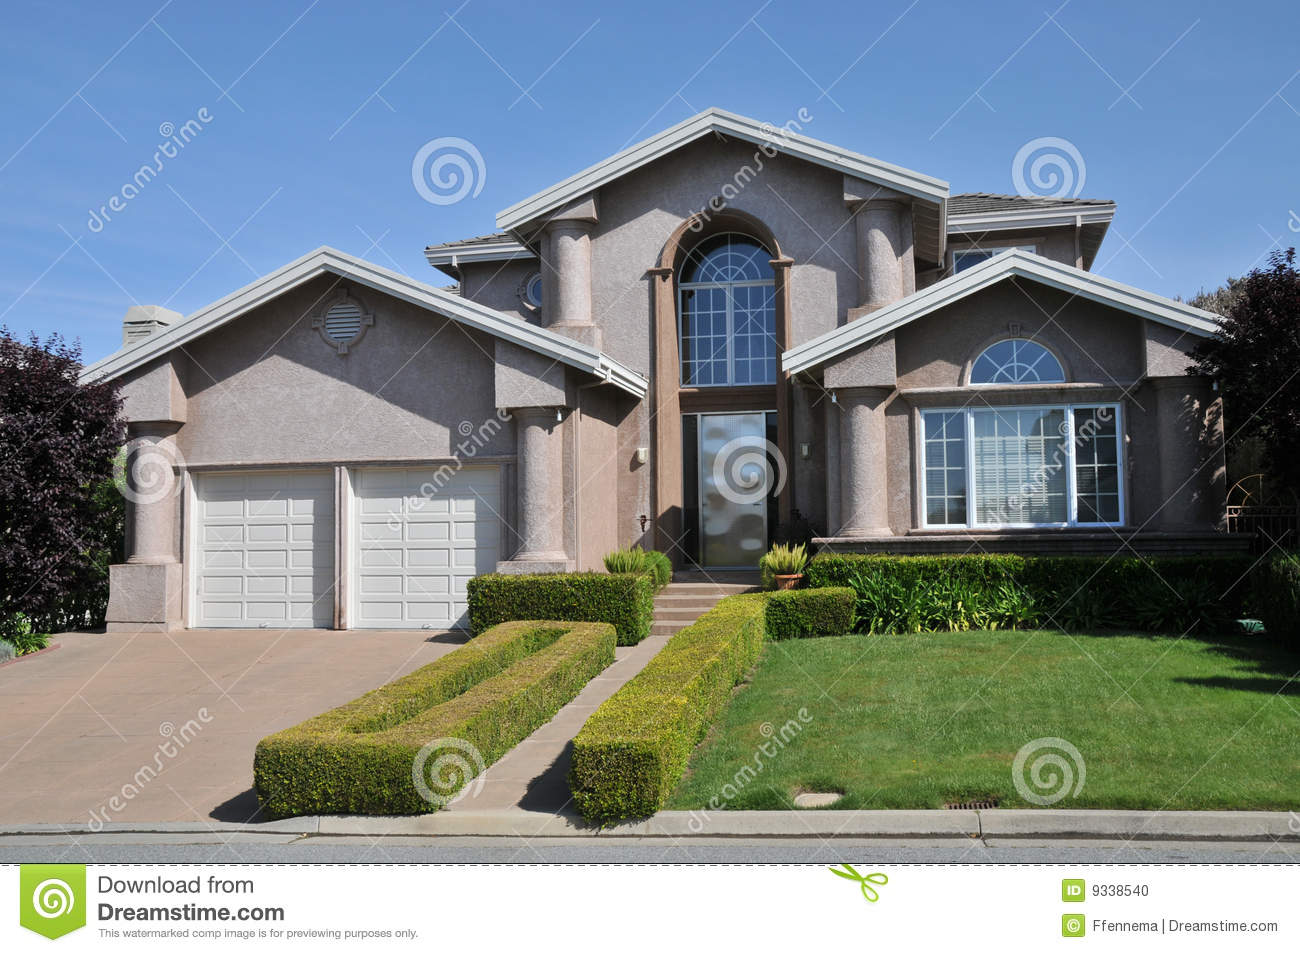 Two Car Garage House With Decorative Schrubs Stock Photo